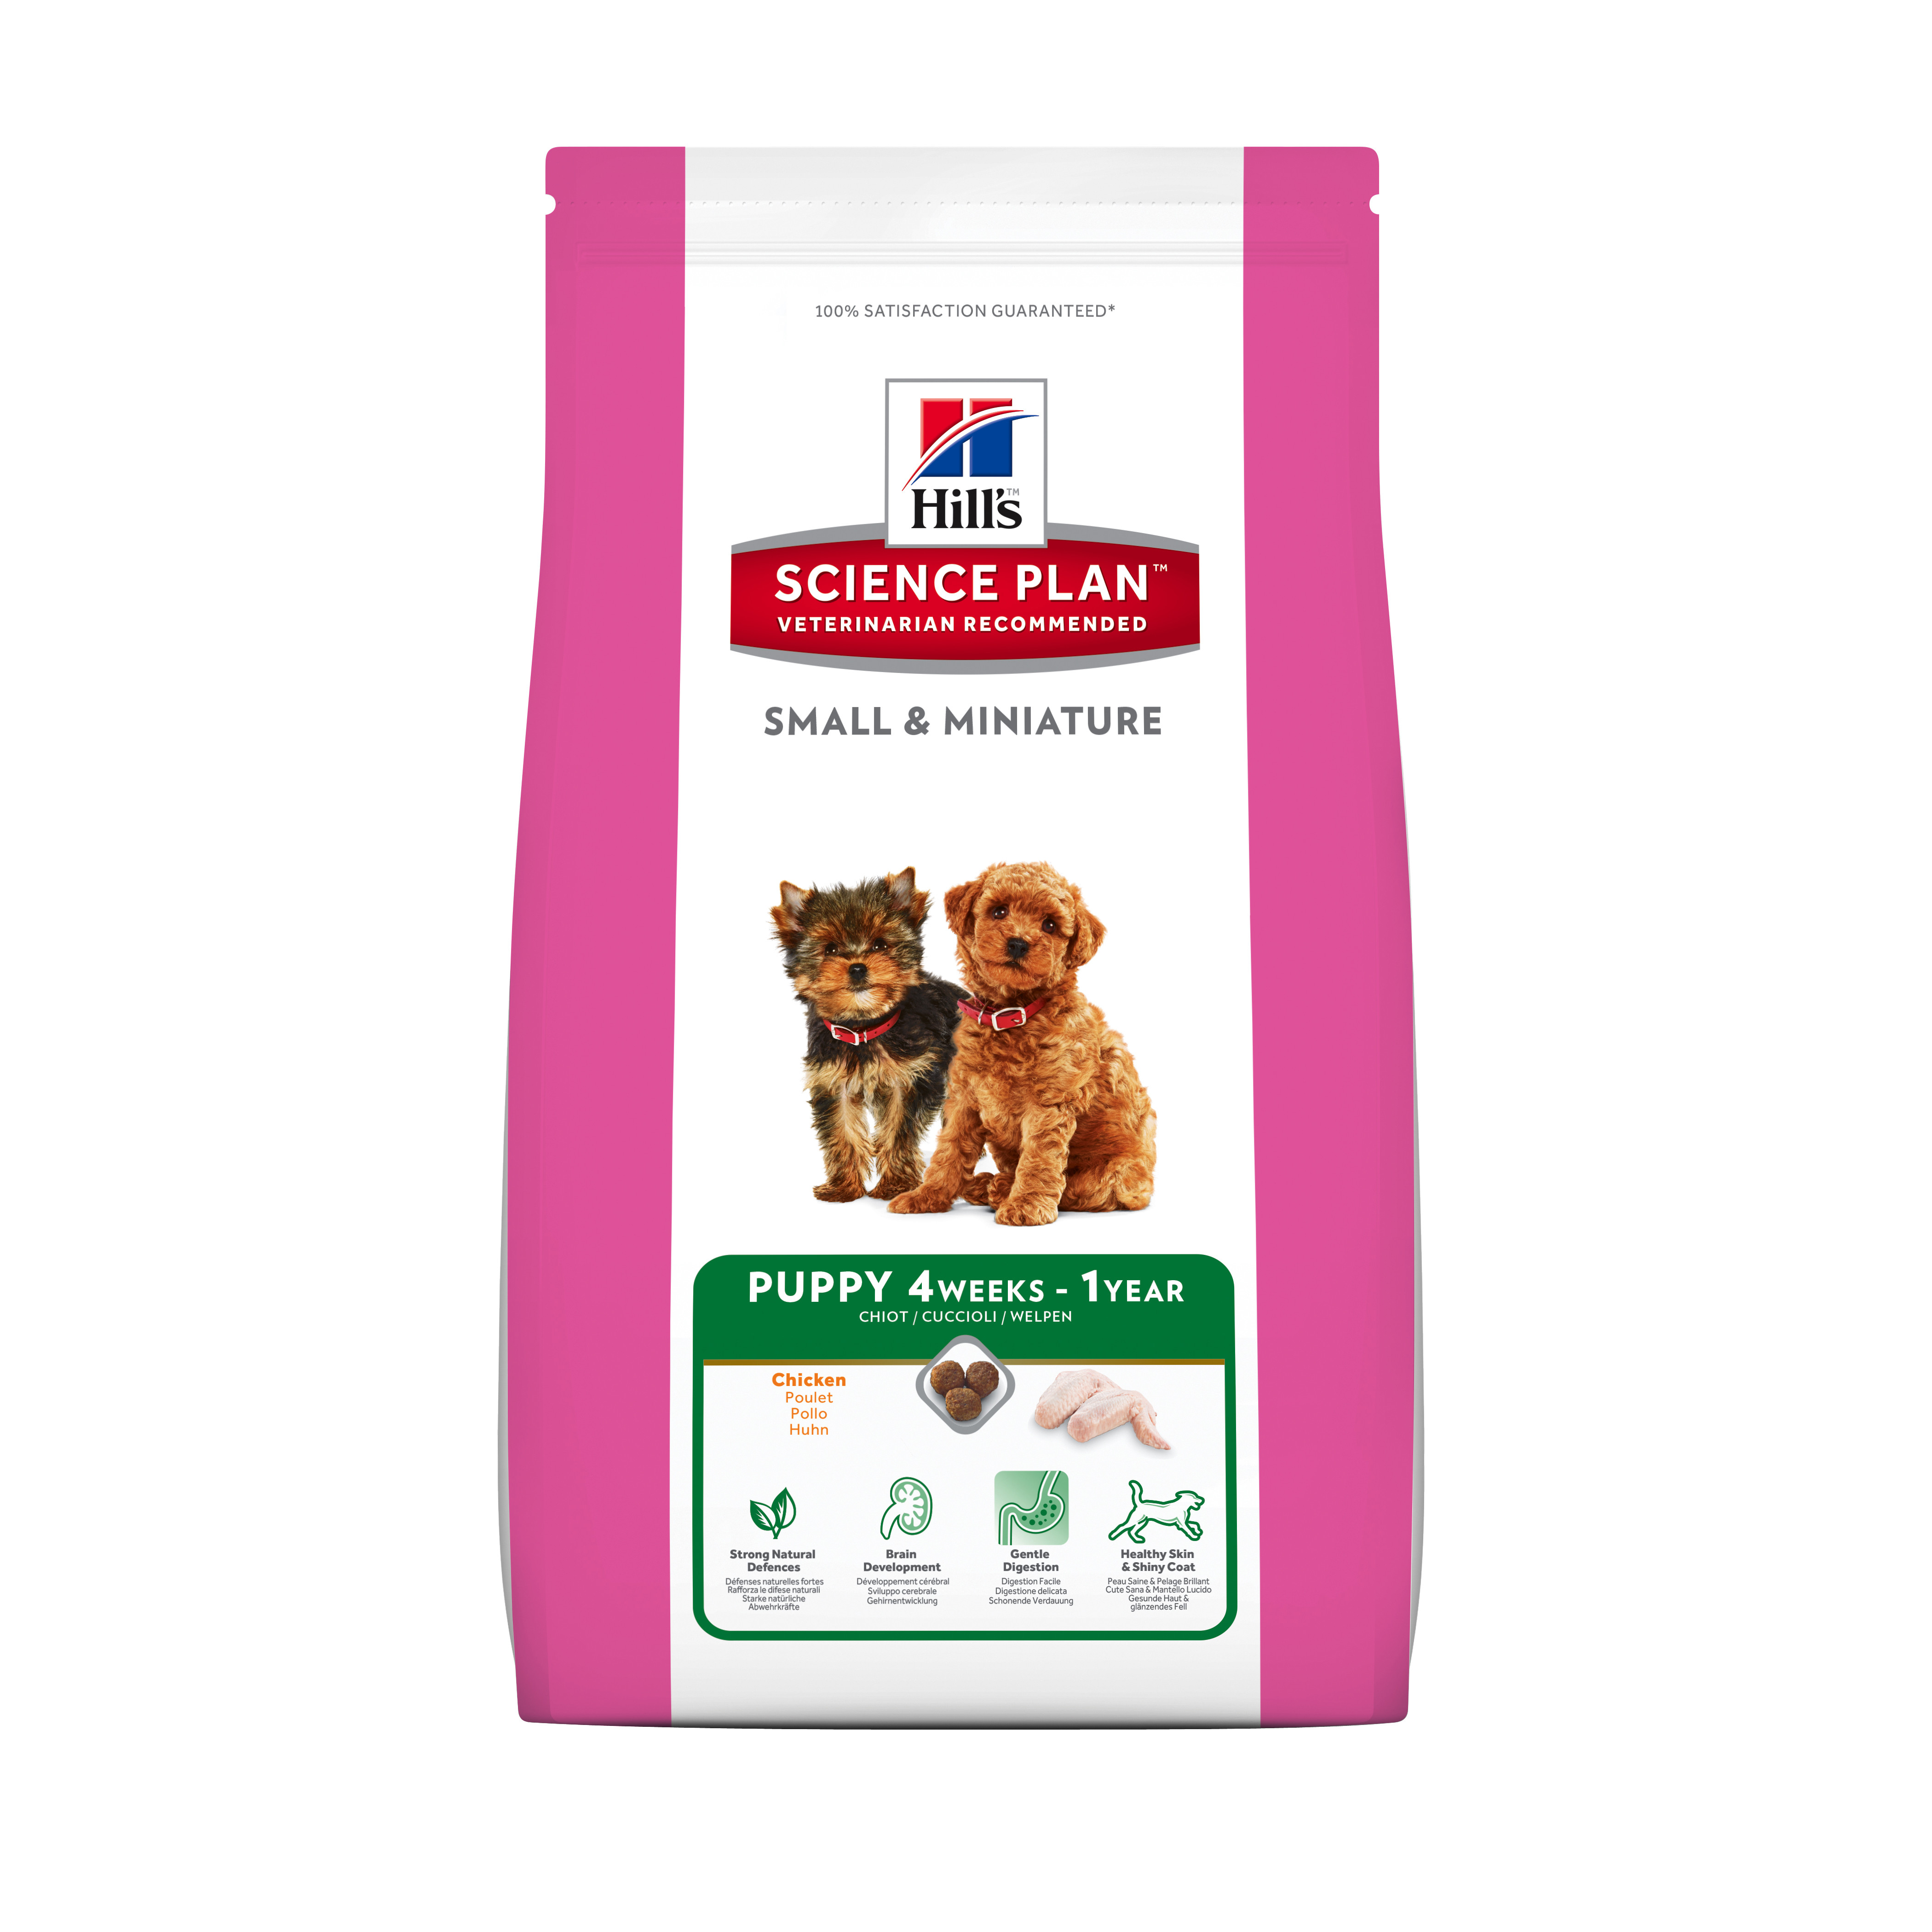 Puppy Plan Pro Sensitive Skin And Coat 25kg Hills Science Small 4200x4200